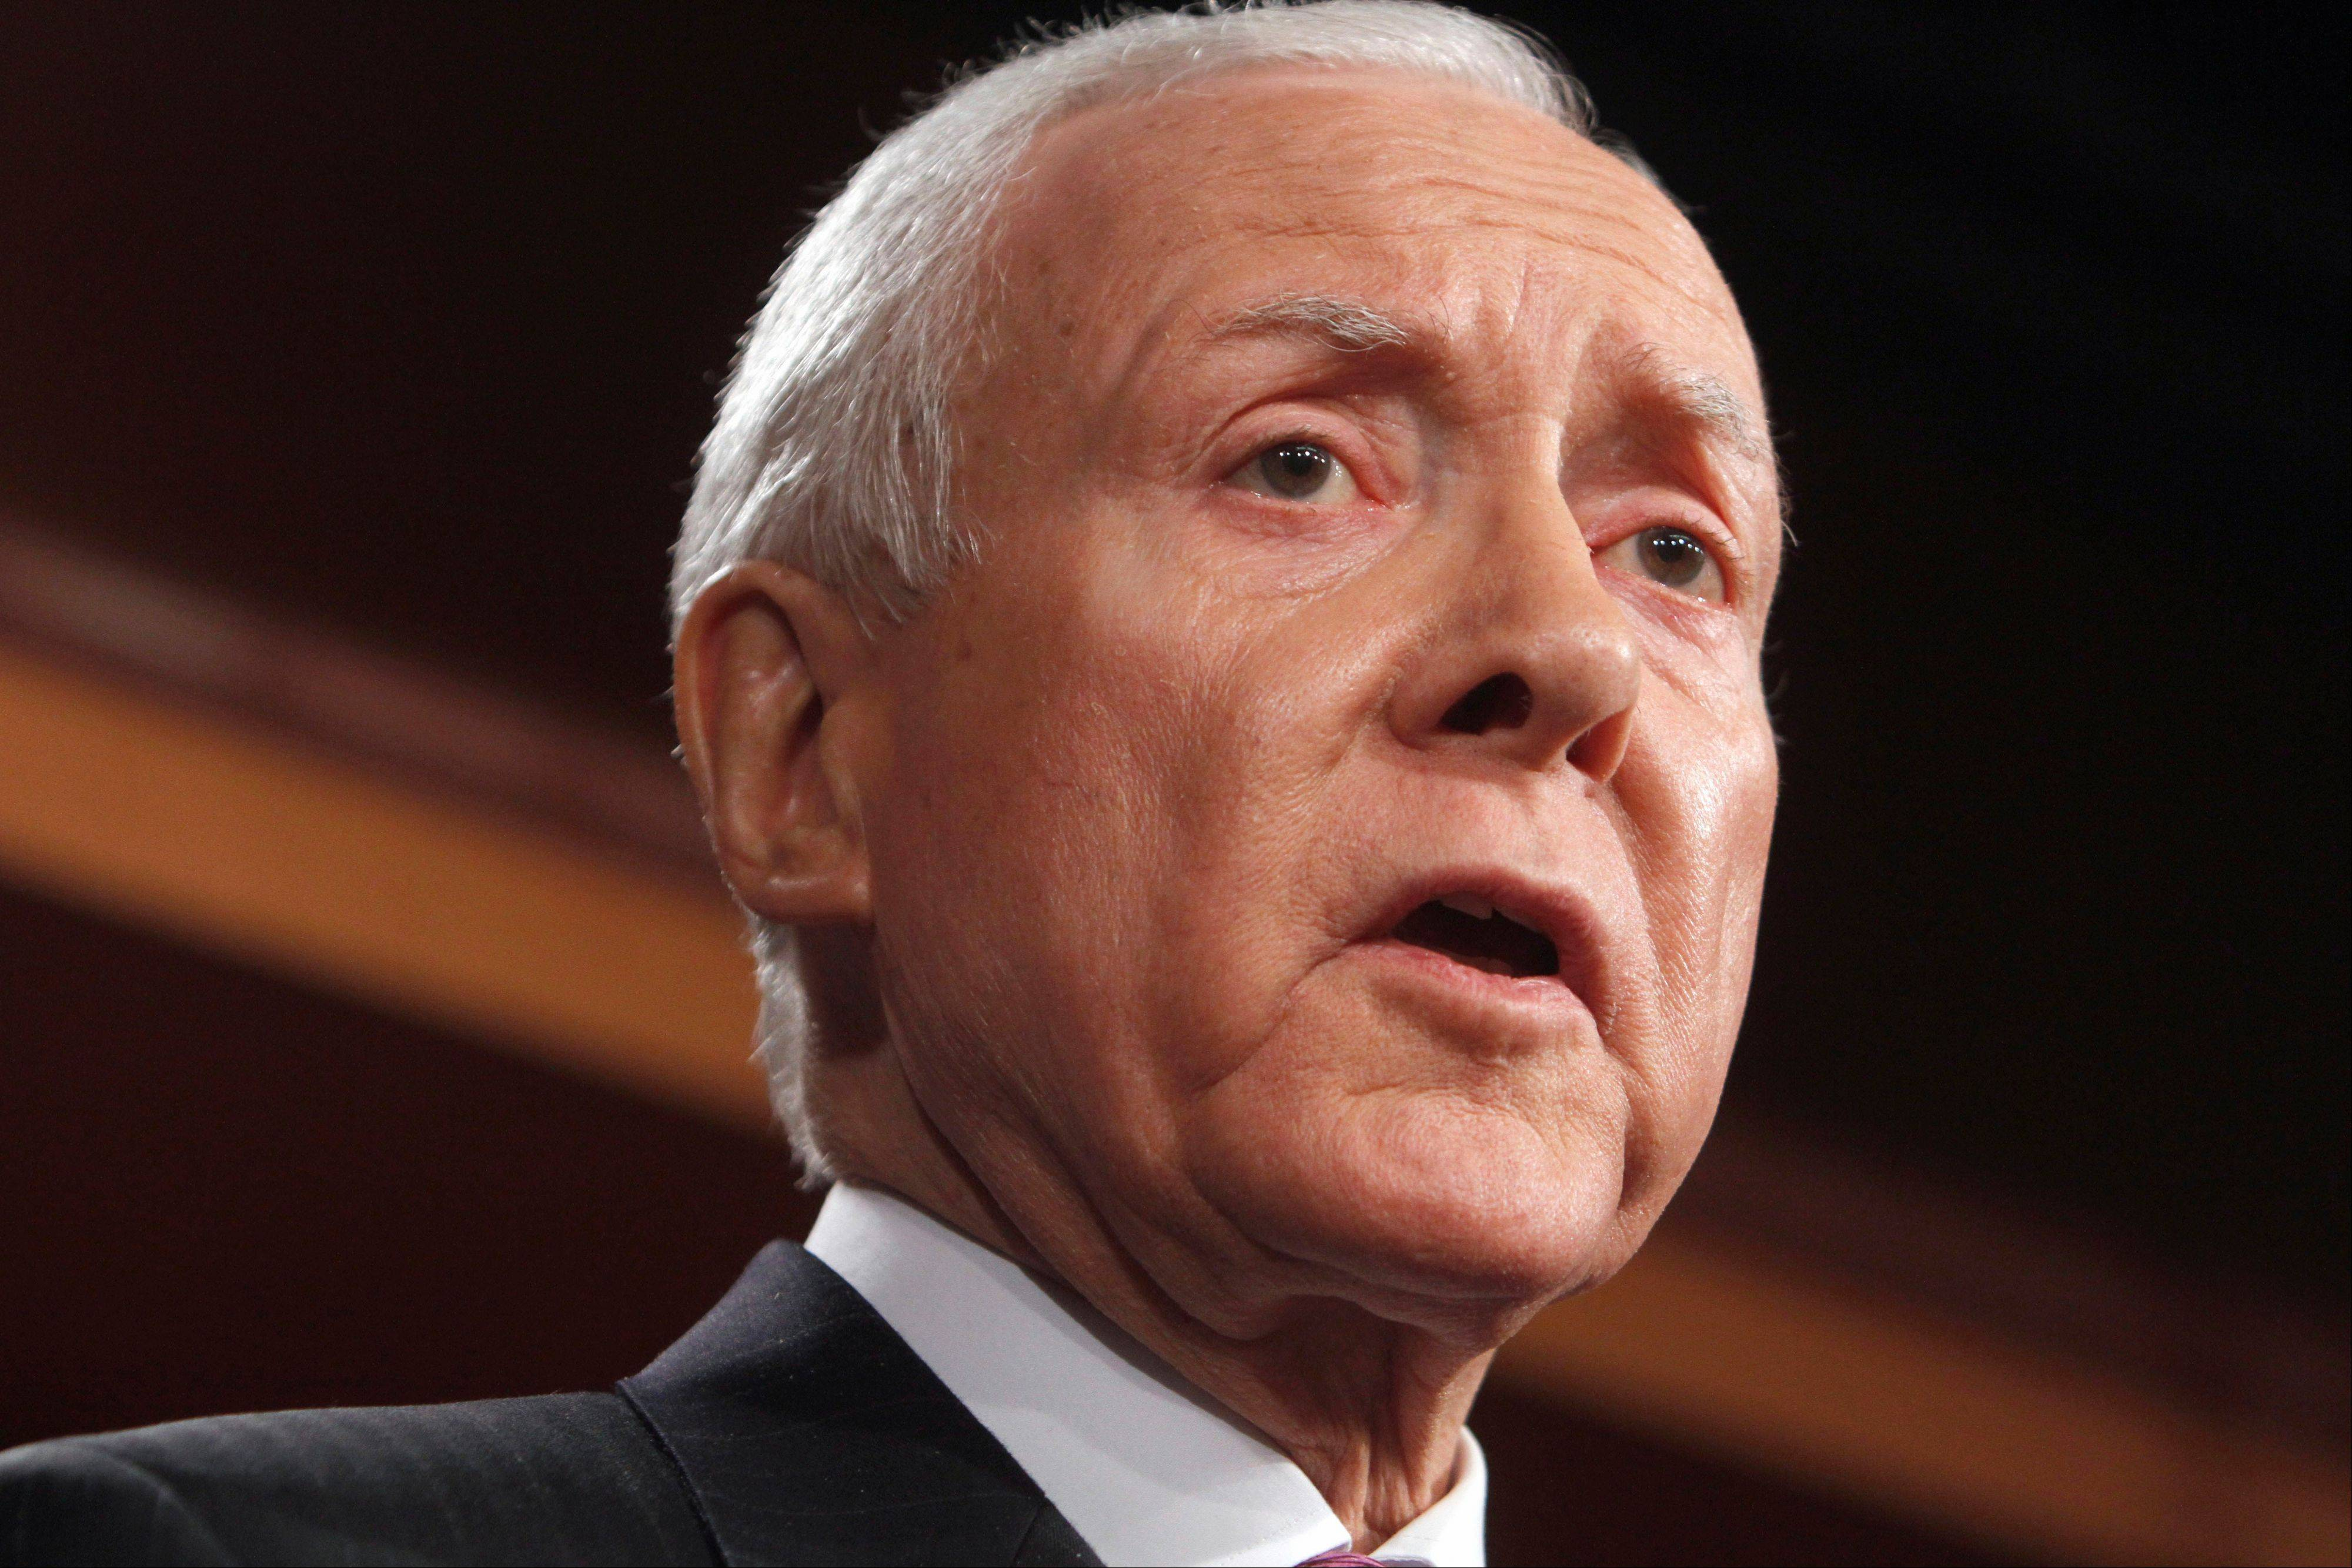 Assoicated PressOrrin Hatch, R-Utah, speaks on Capitol Hill in Washington. In a rebuke to the Obama administration, government auditors are calling for the cancellation of an $8 billion Medicare program that congressional Republicans have criticized as a political ploy.